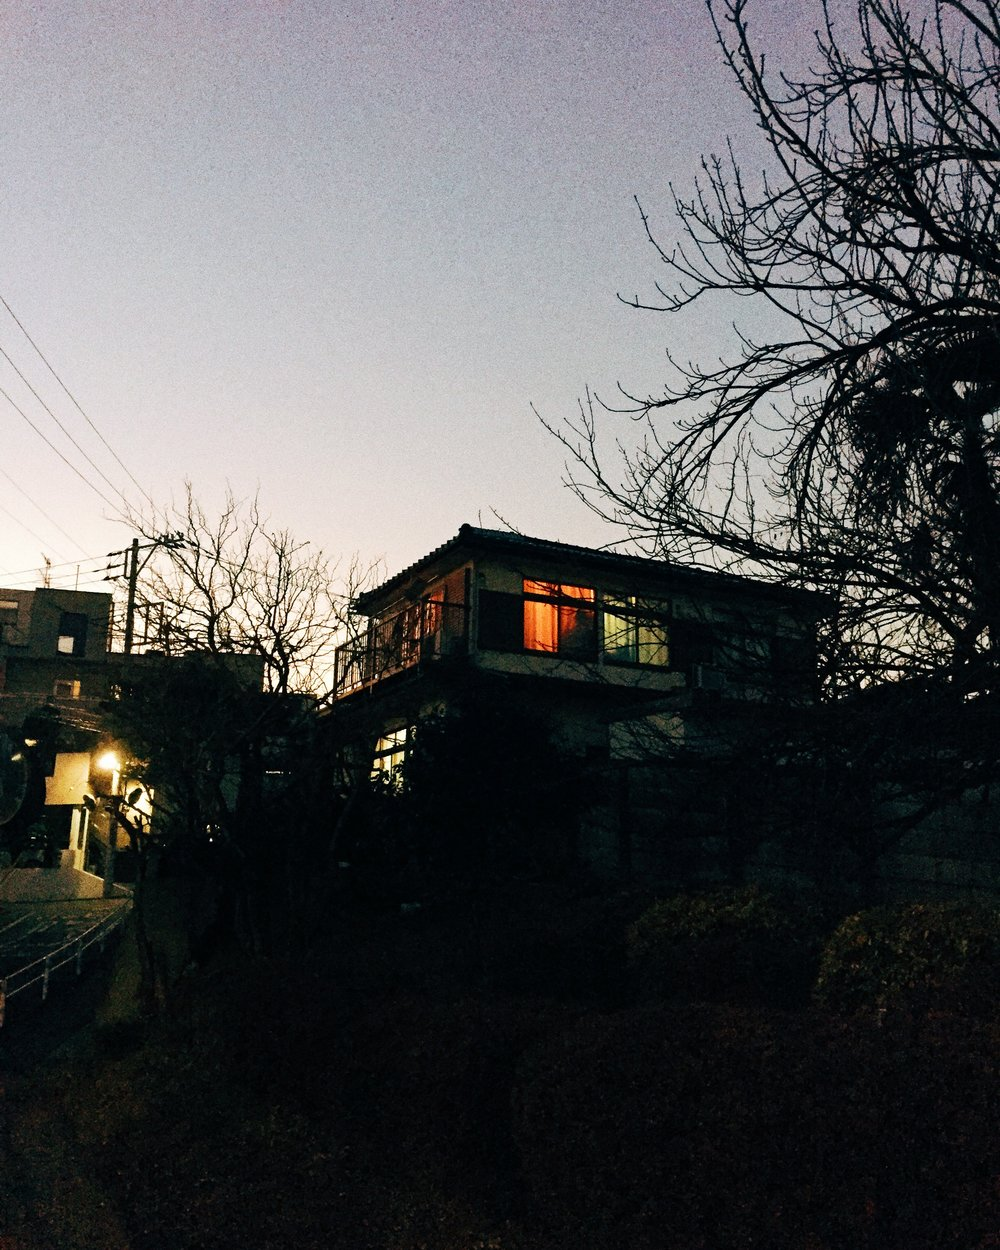 Shinkawa-dori, Winter 2015.